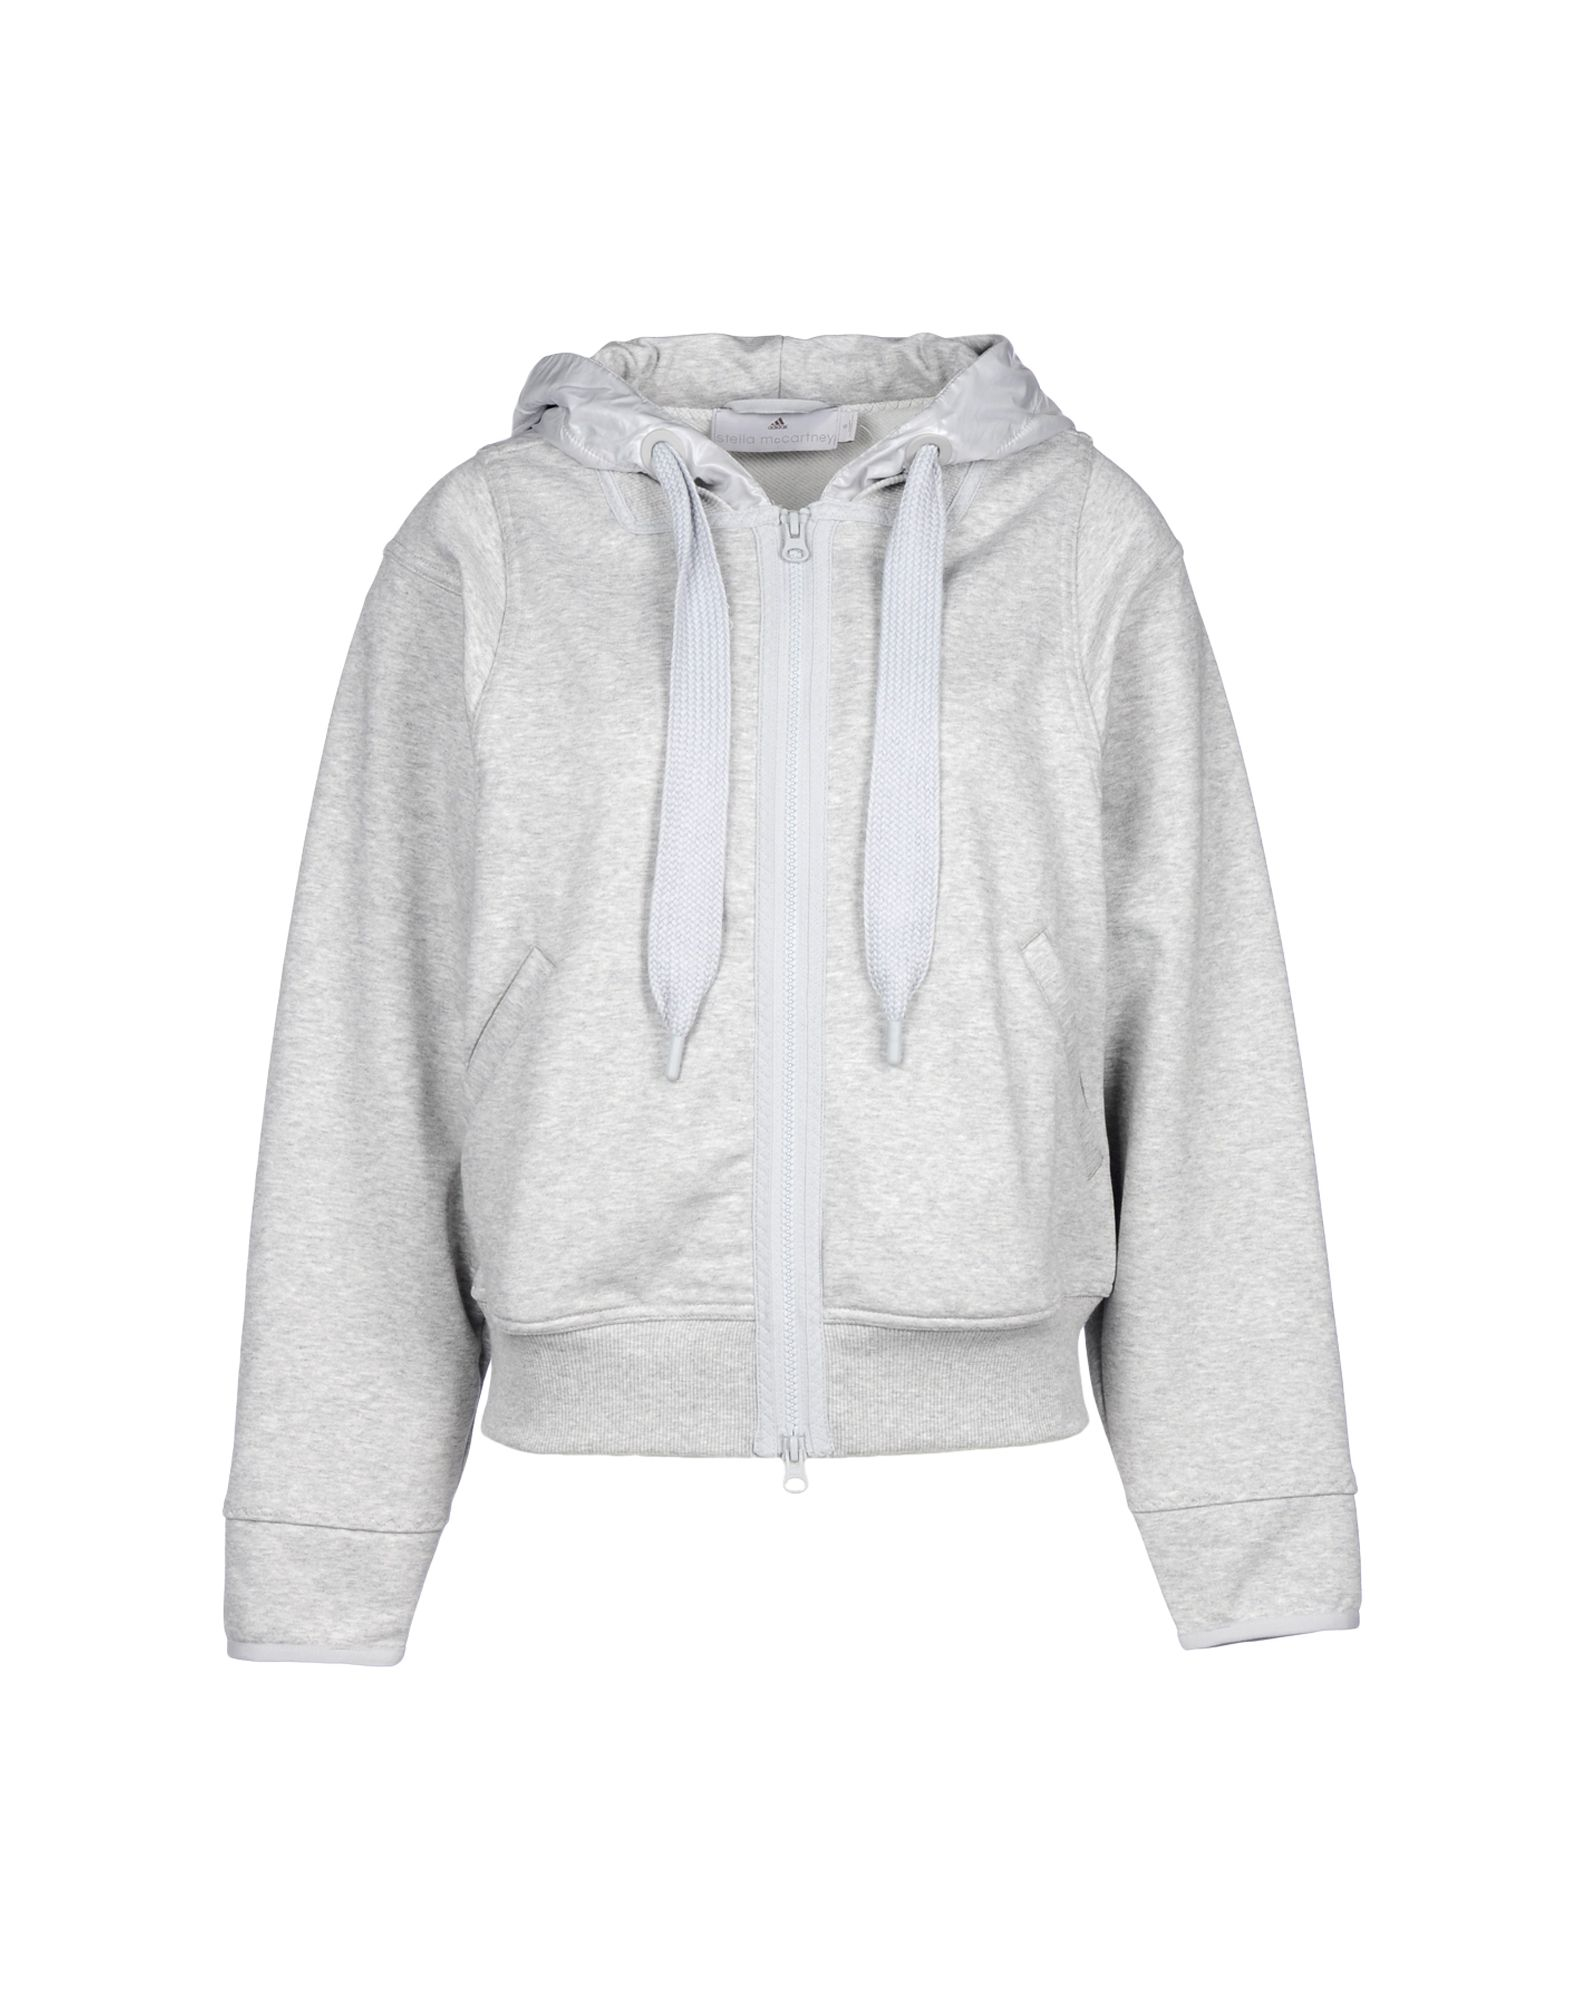 adidas by stella mccartney sweatshirt in gray lyst. Black Bedroom Furniture Sets. Home Design Ideas